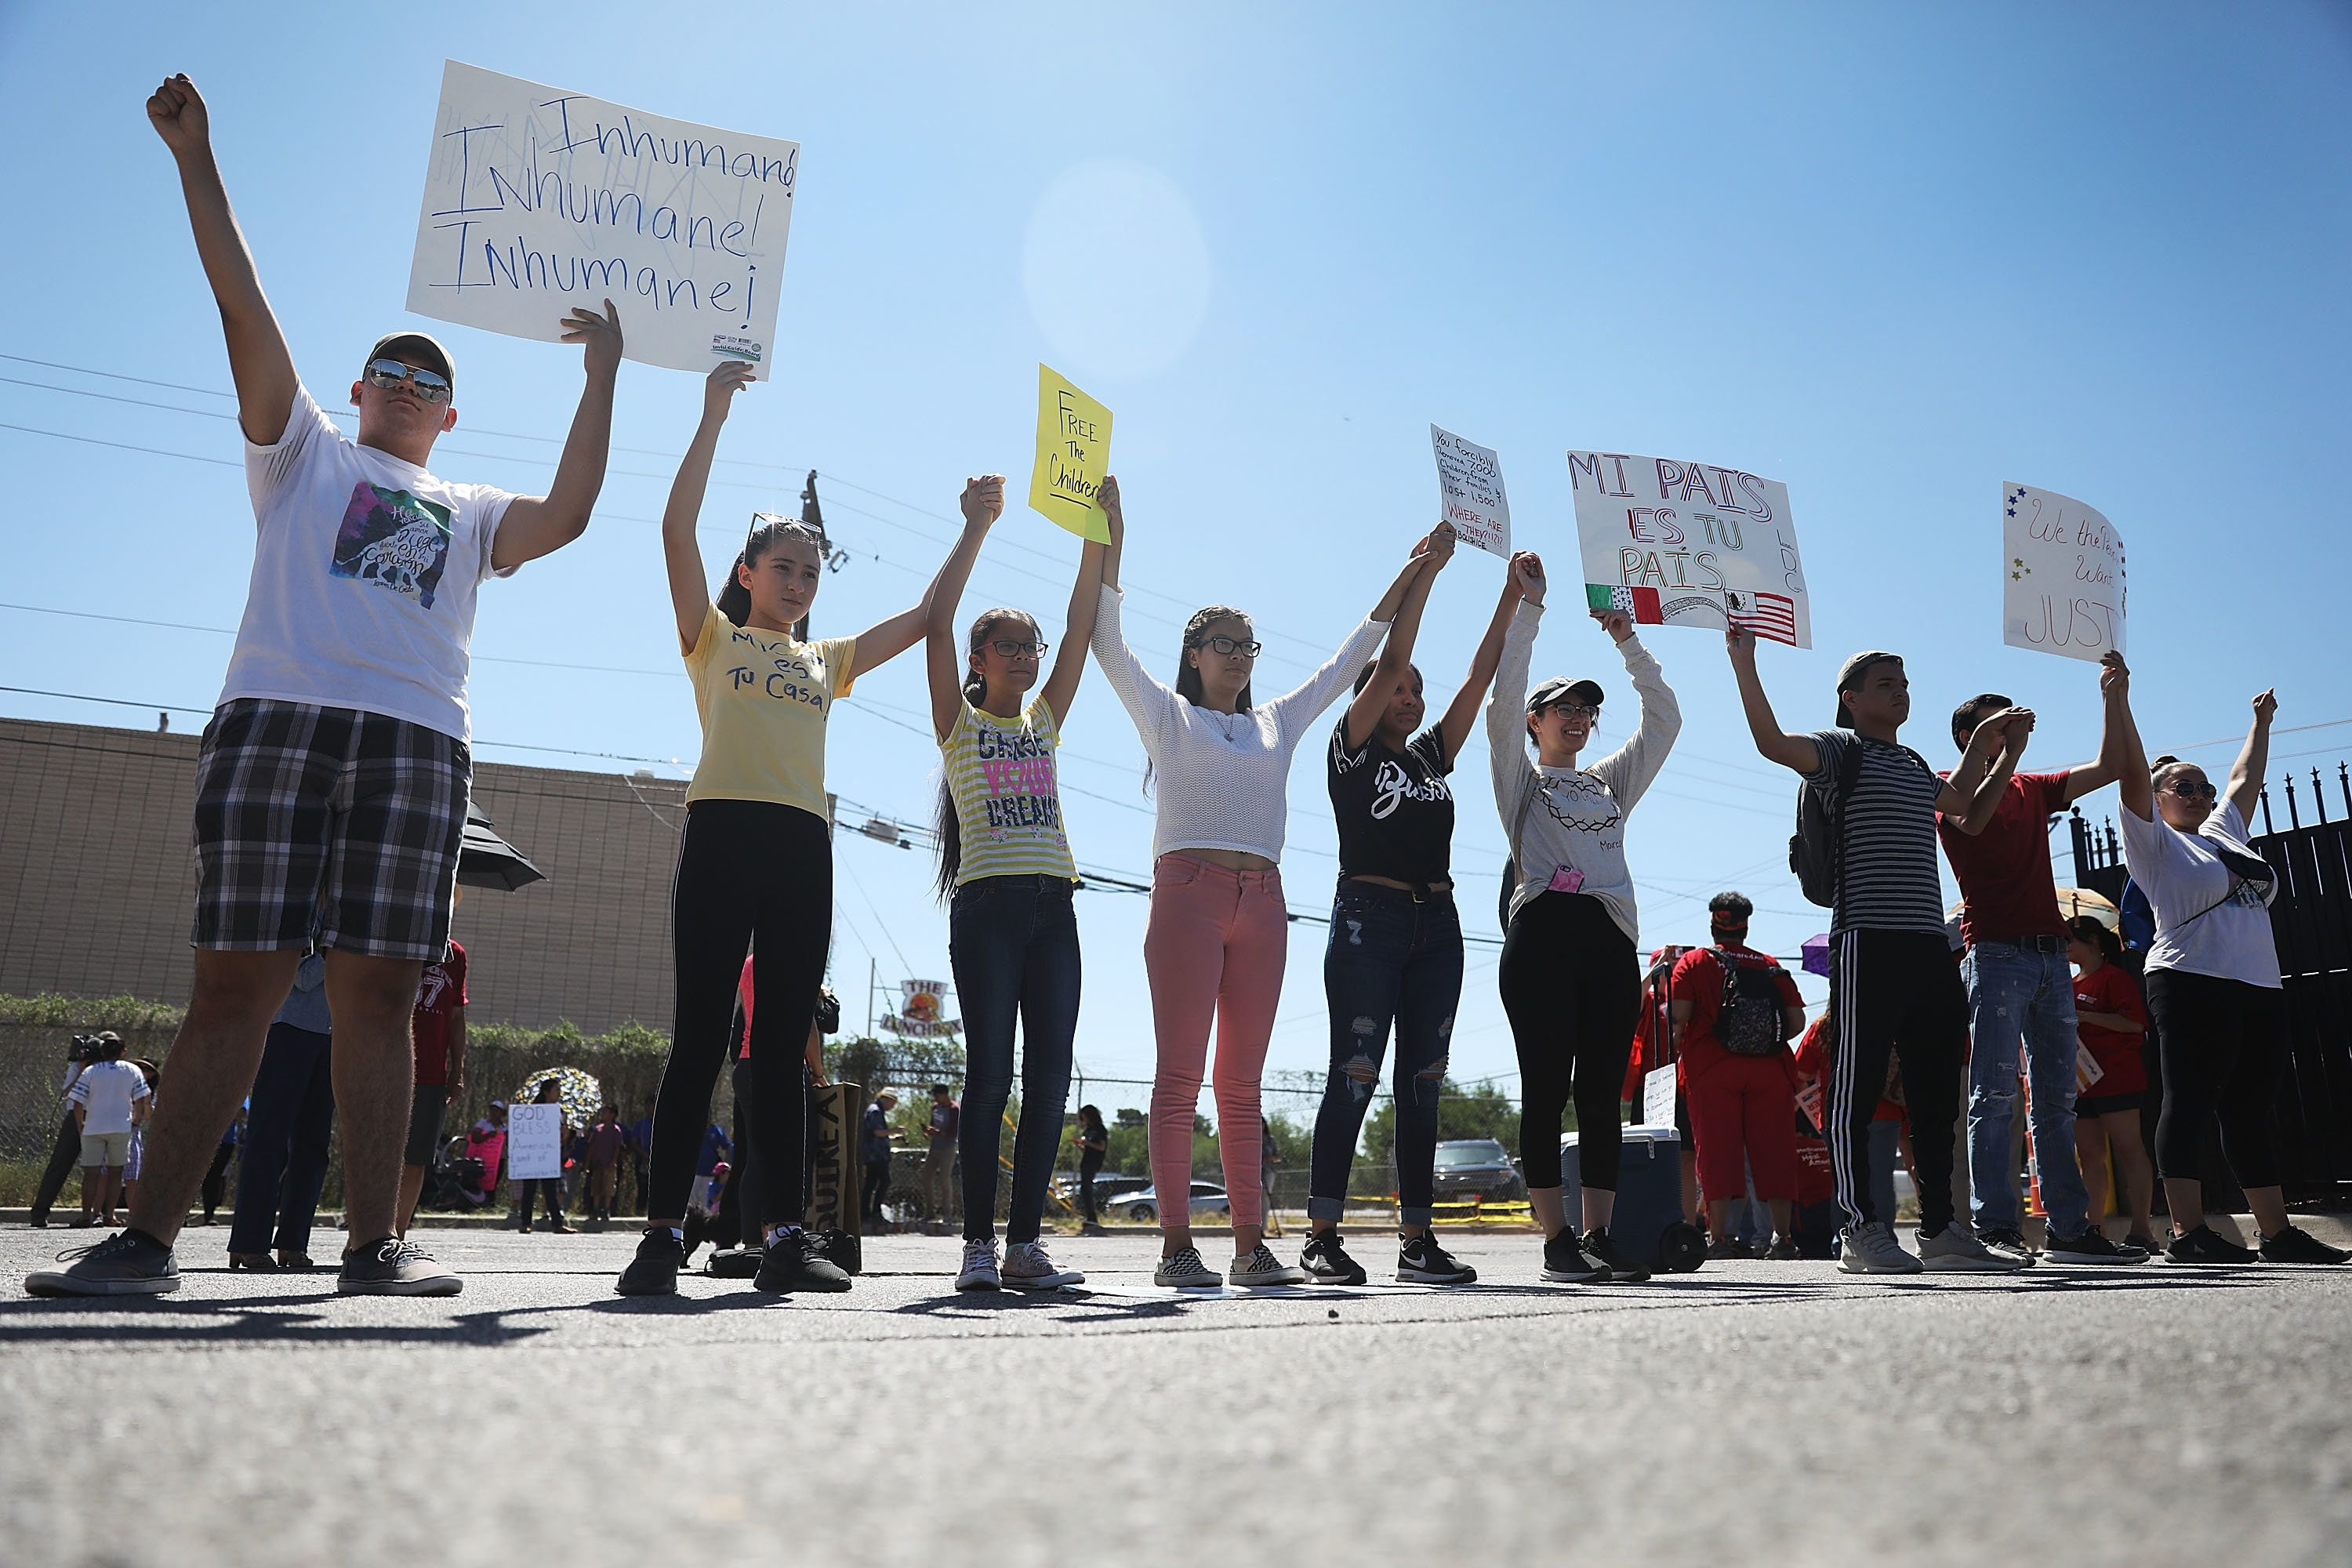 EL PASO, TX - JUNE 19:  People protest the separation of children from their parents in front of the El Paso Processing Center, an immigration detention facility, at the Mexican border on June 19, 2018 in El Paso, Texas. The separations have received intense scrutiny as the Trump administration institutes a zero tolerance policy on illegal immigration.  (Photo by Joe Raedle/Getty Images)